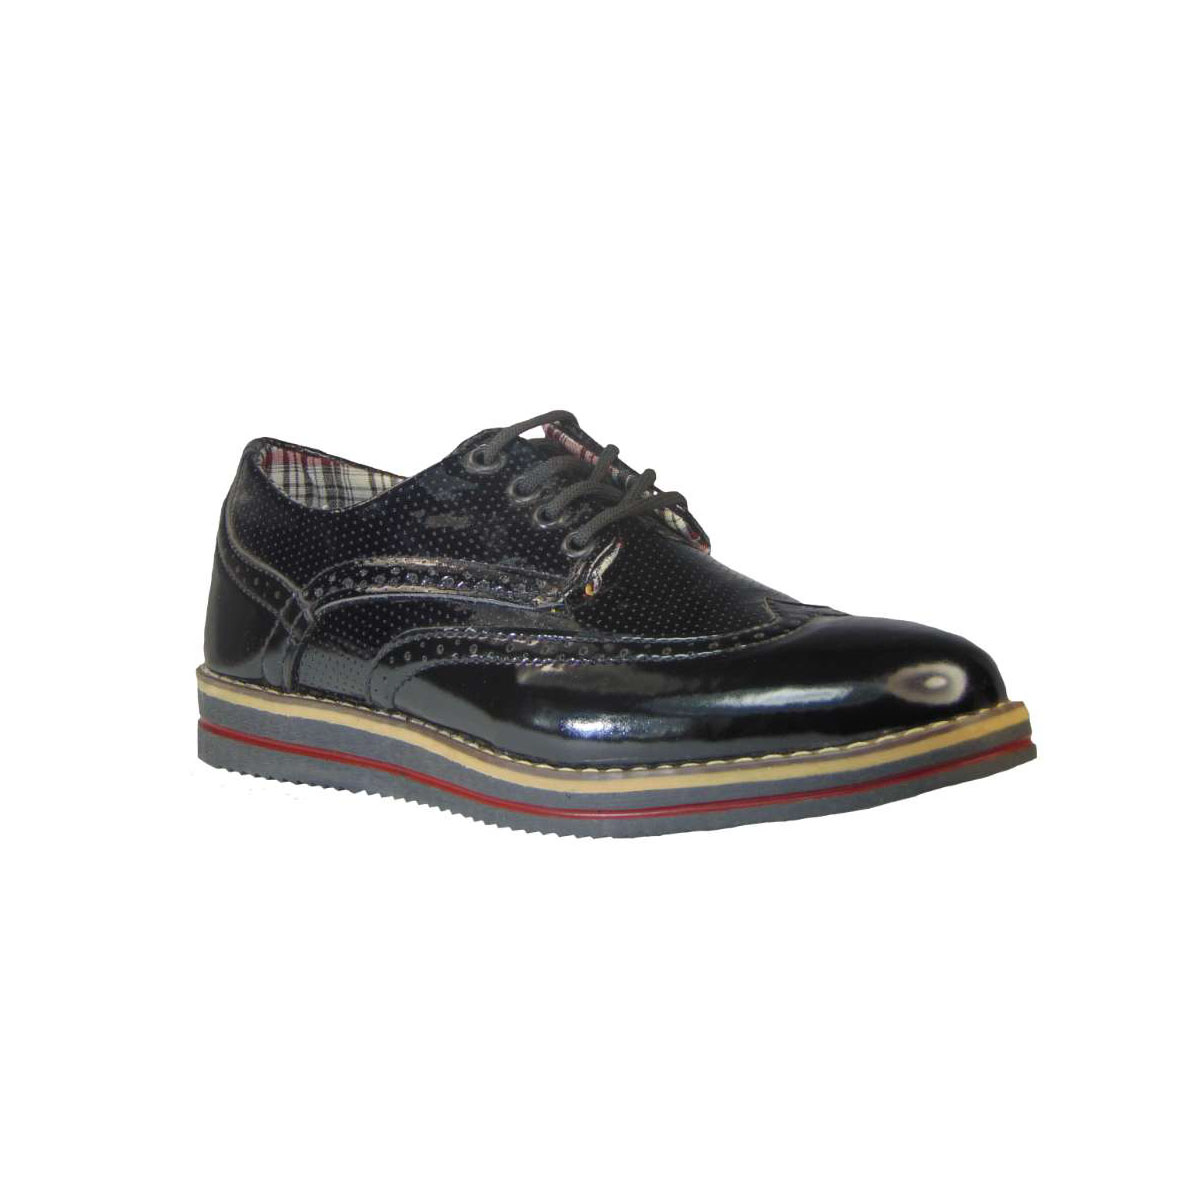 Tsimpolis Shoes 01221 Oxford Δερμάτινο Καστόρι Μαύρο. 37.00€ 19.00€.  Επιλογή. Brand  TsimpolisShoes. -31%. Add to Wishlist loading 678fc57064d